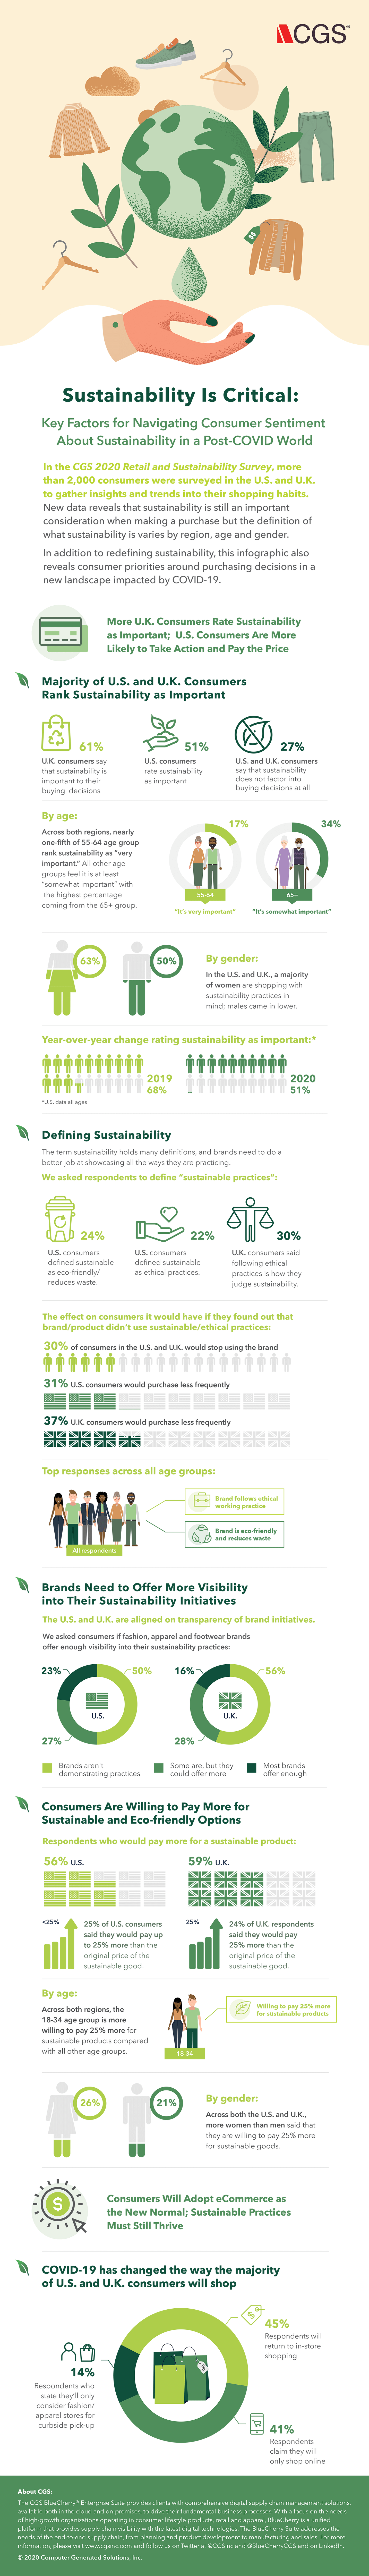 Survey Reveals Fashion and Apparel Sustainability Shopping Preferences Infographic